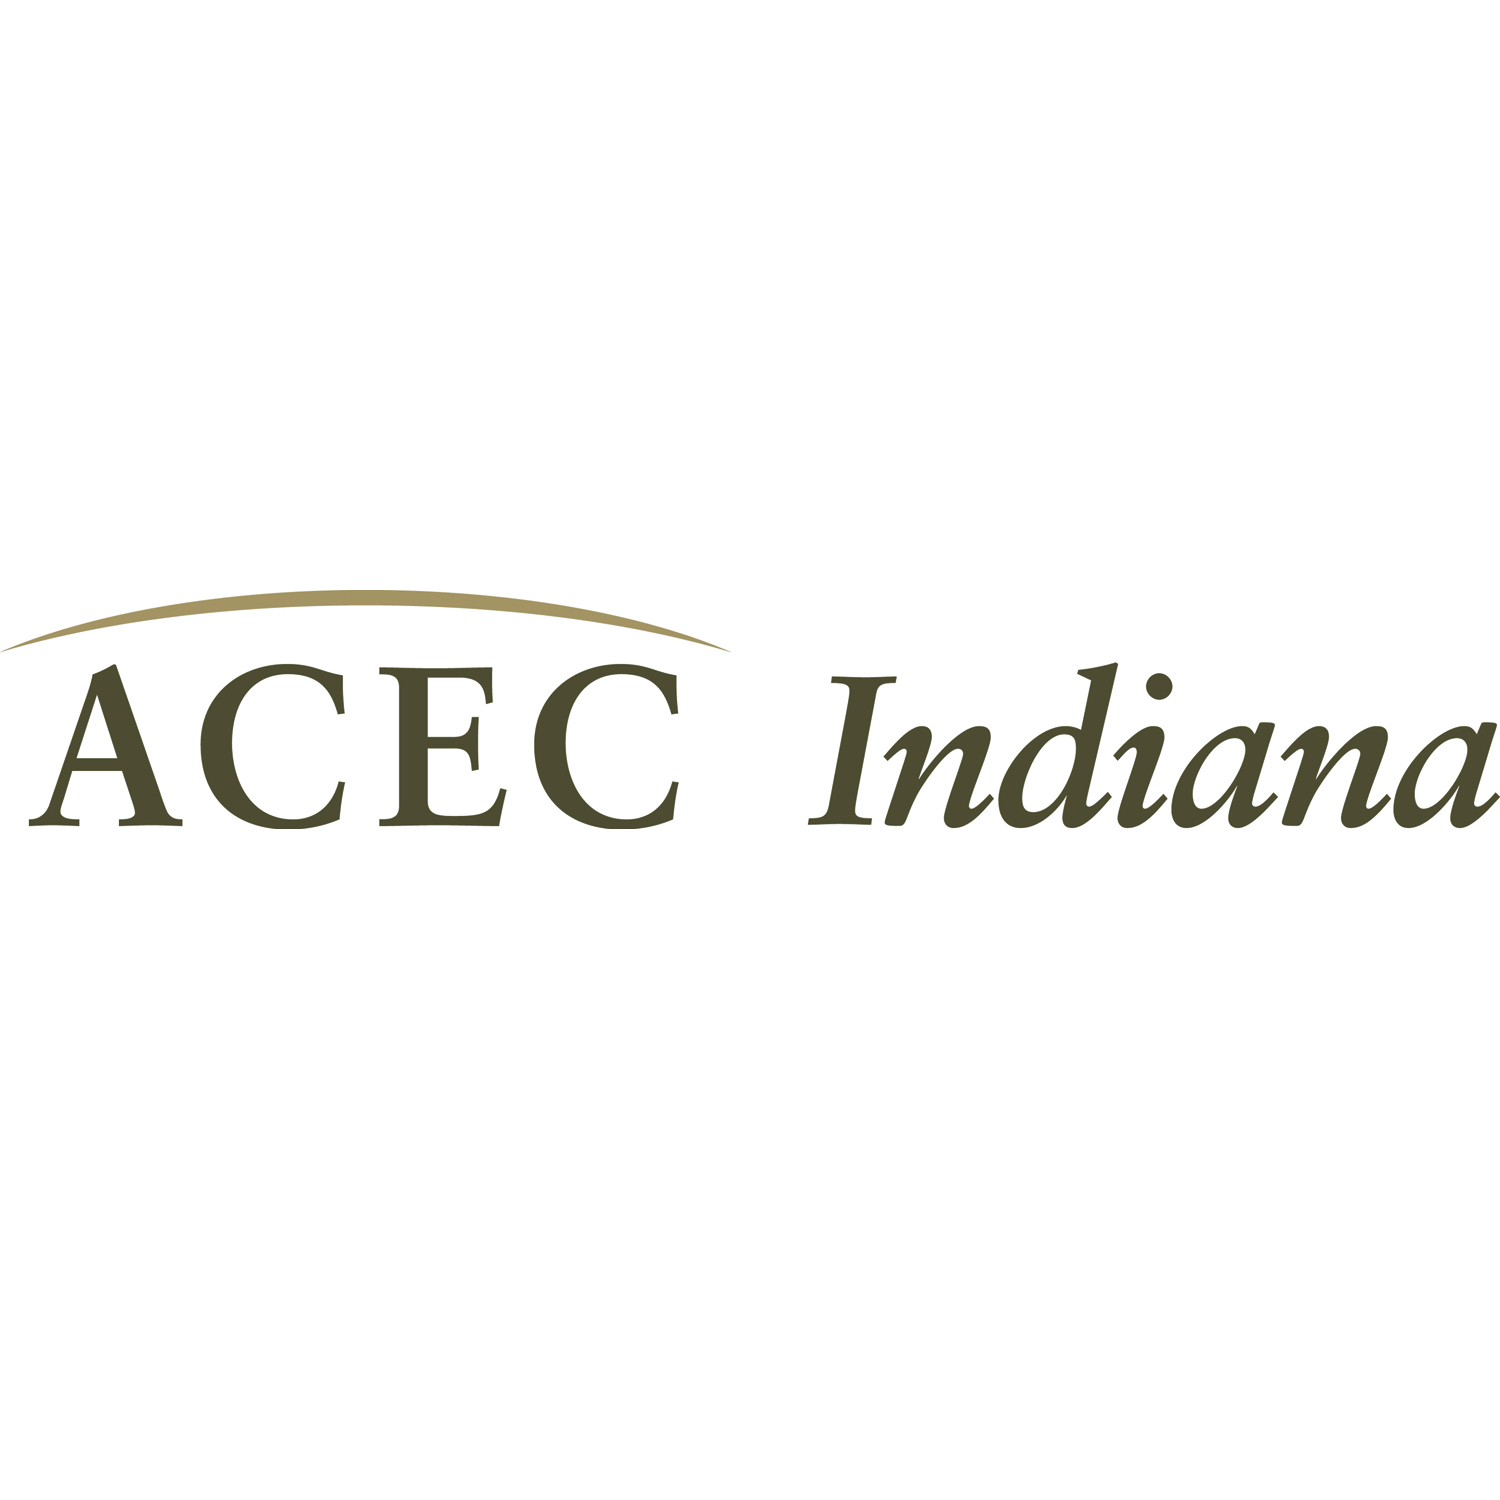 ACEC Indiana Logo copy